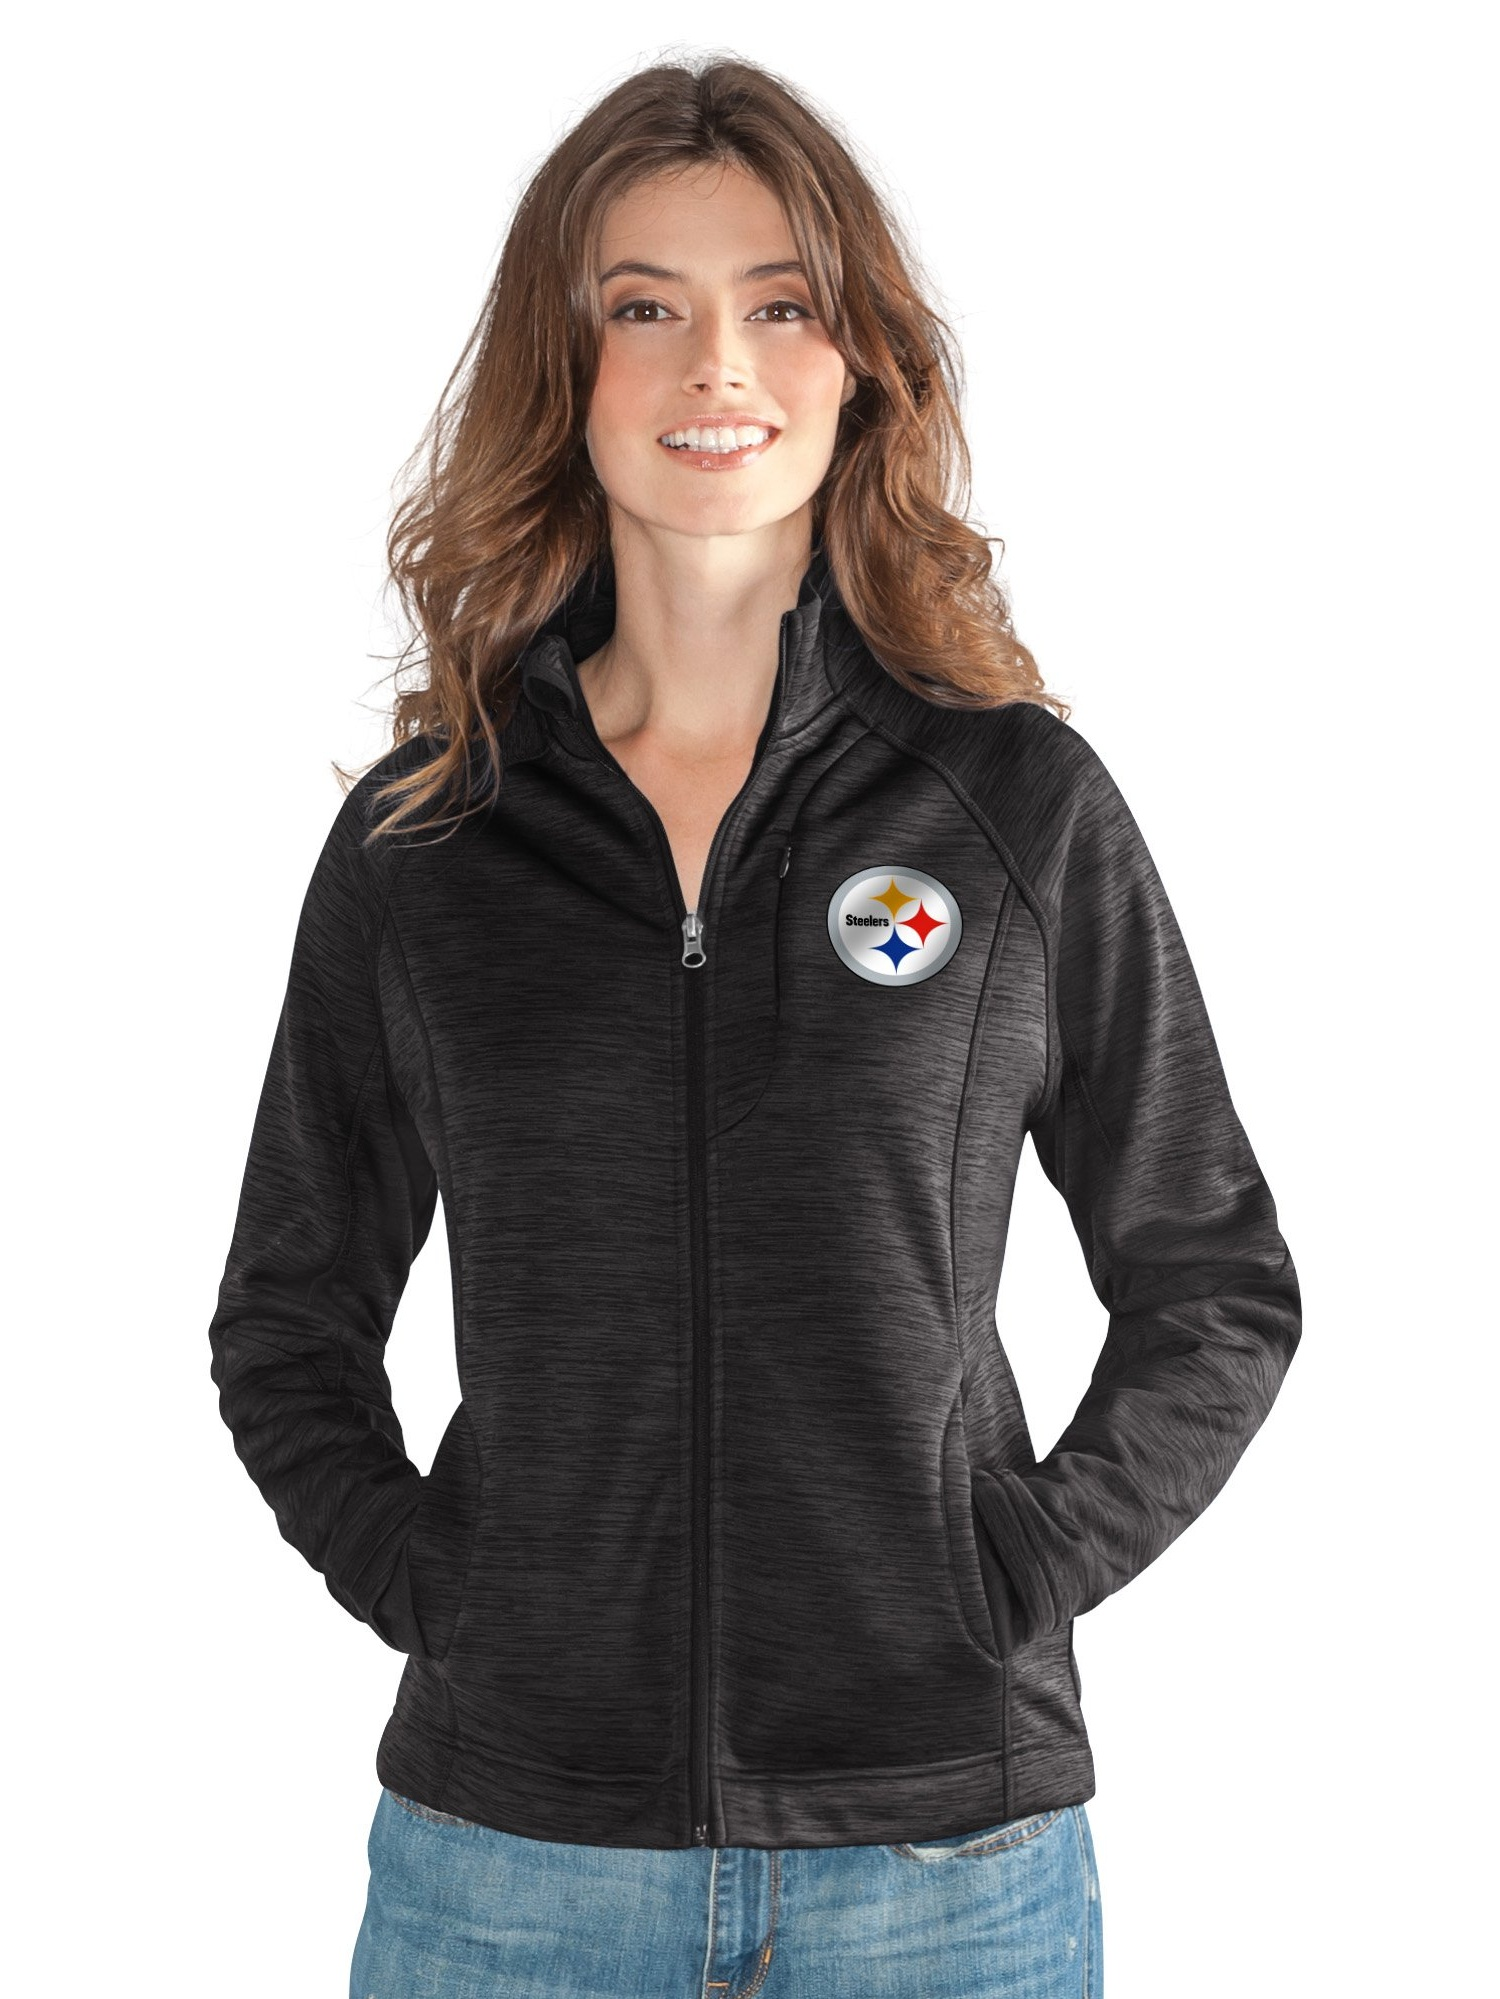 Pittsburgh Steelers Women's Full Zip Heathered Black Track Jacket by G-III 4Her by Carl Banks